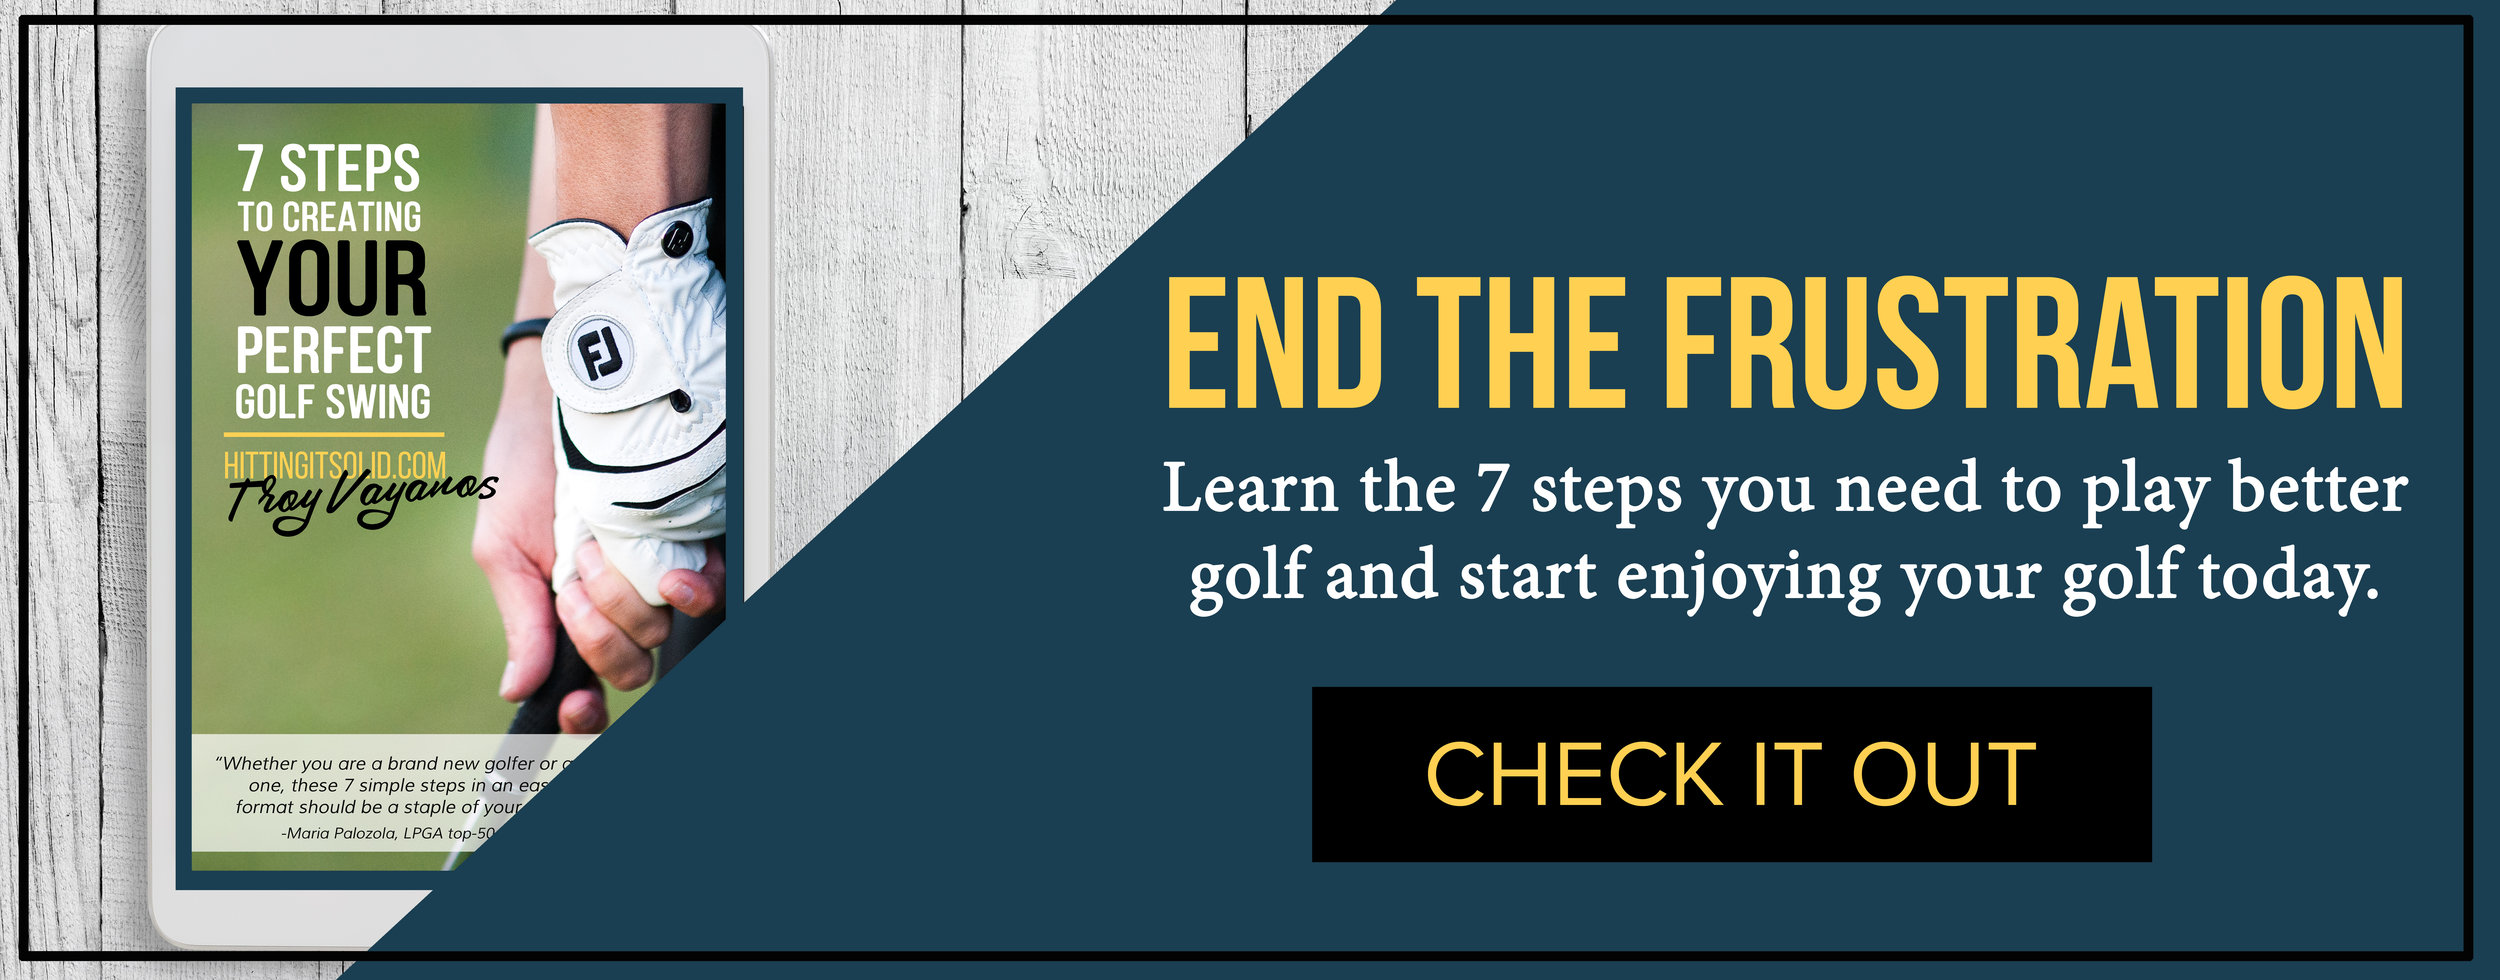 Play better golf today and grab your copy of 7 steps to creating your perfect golf swing